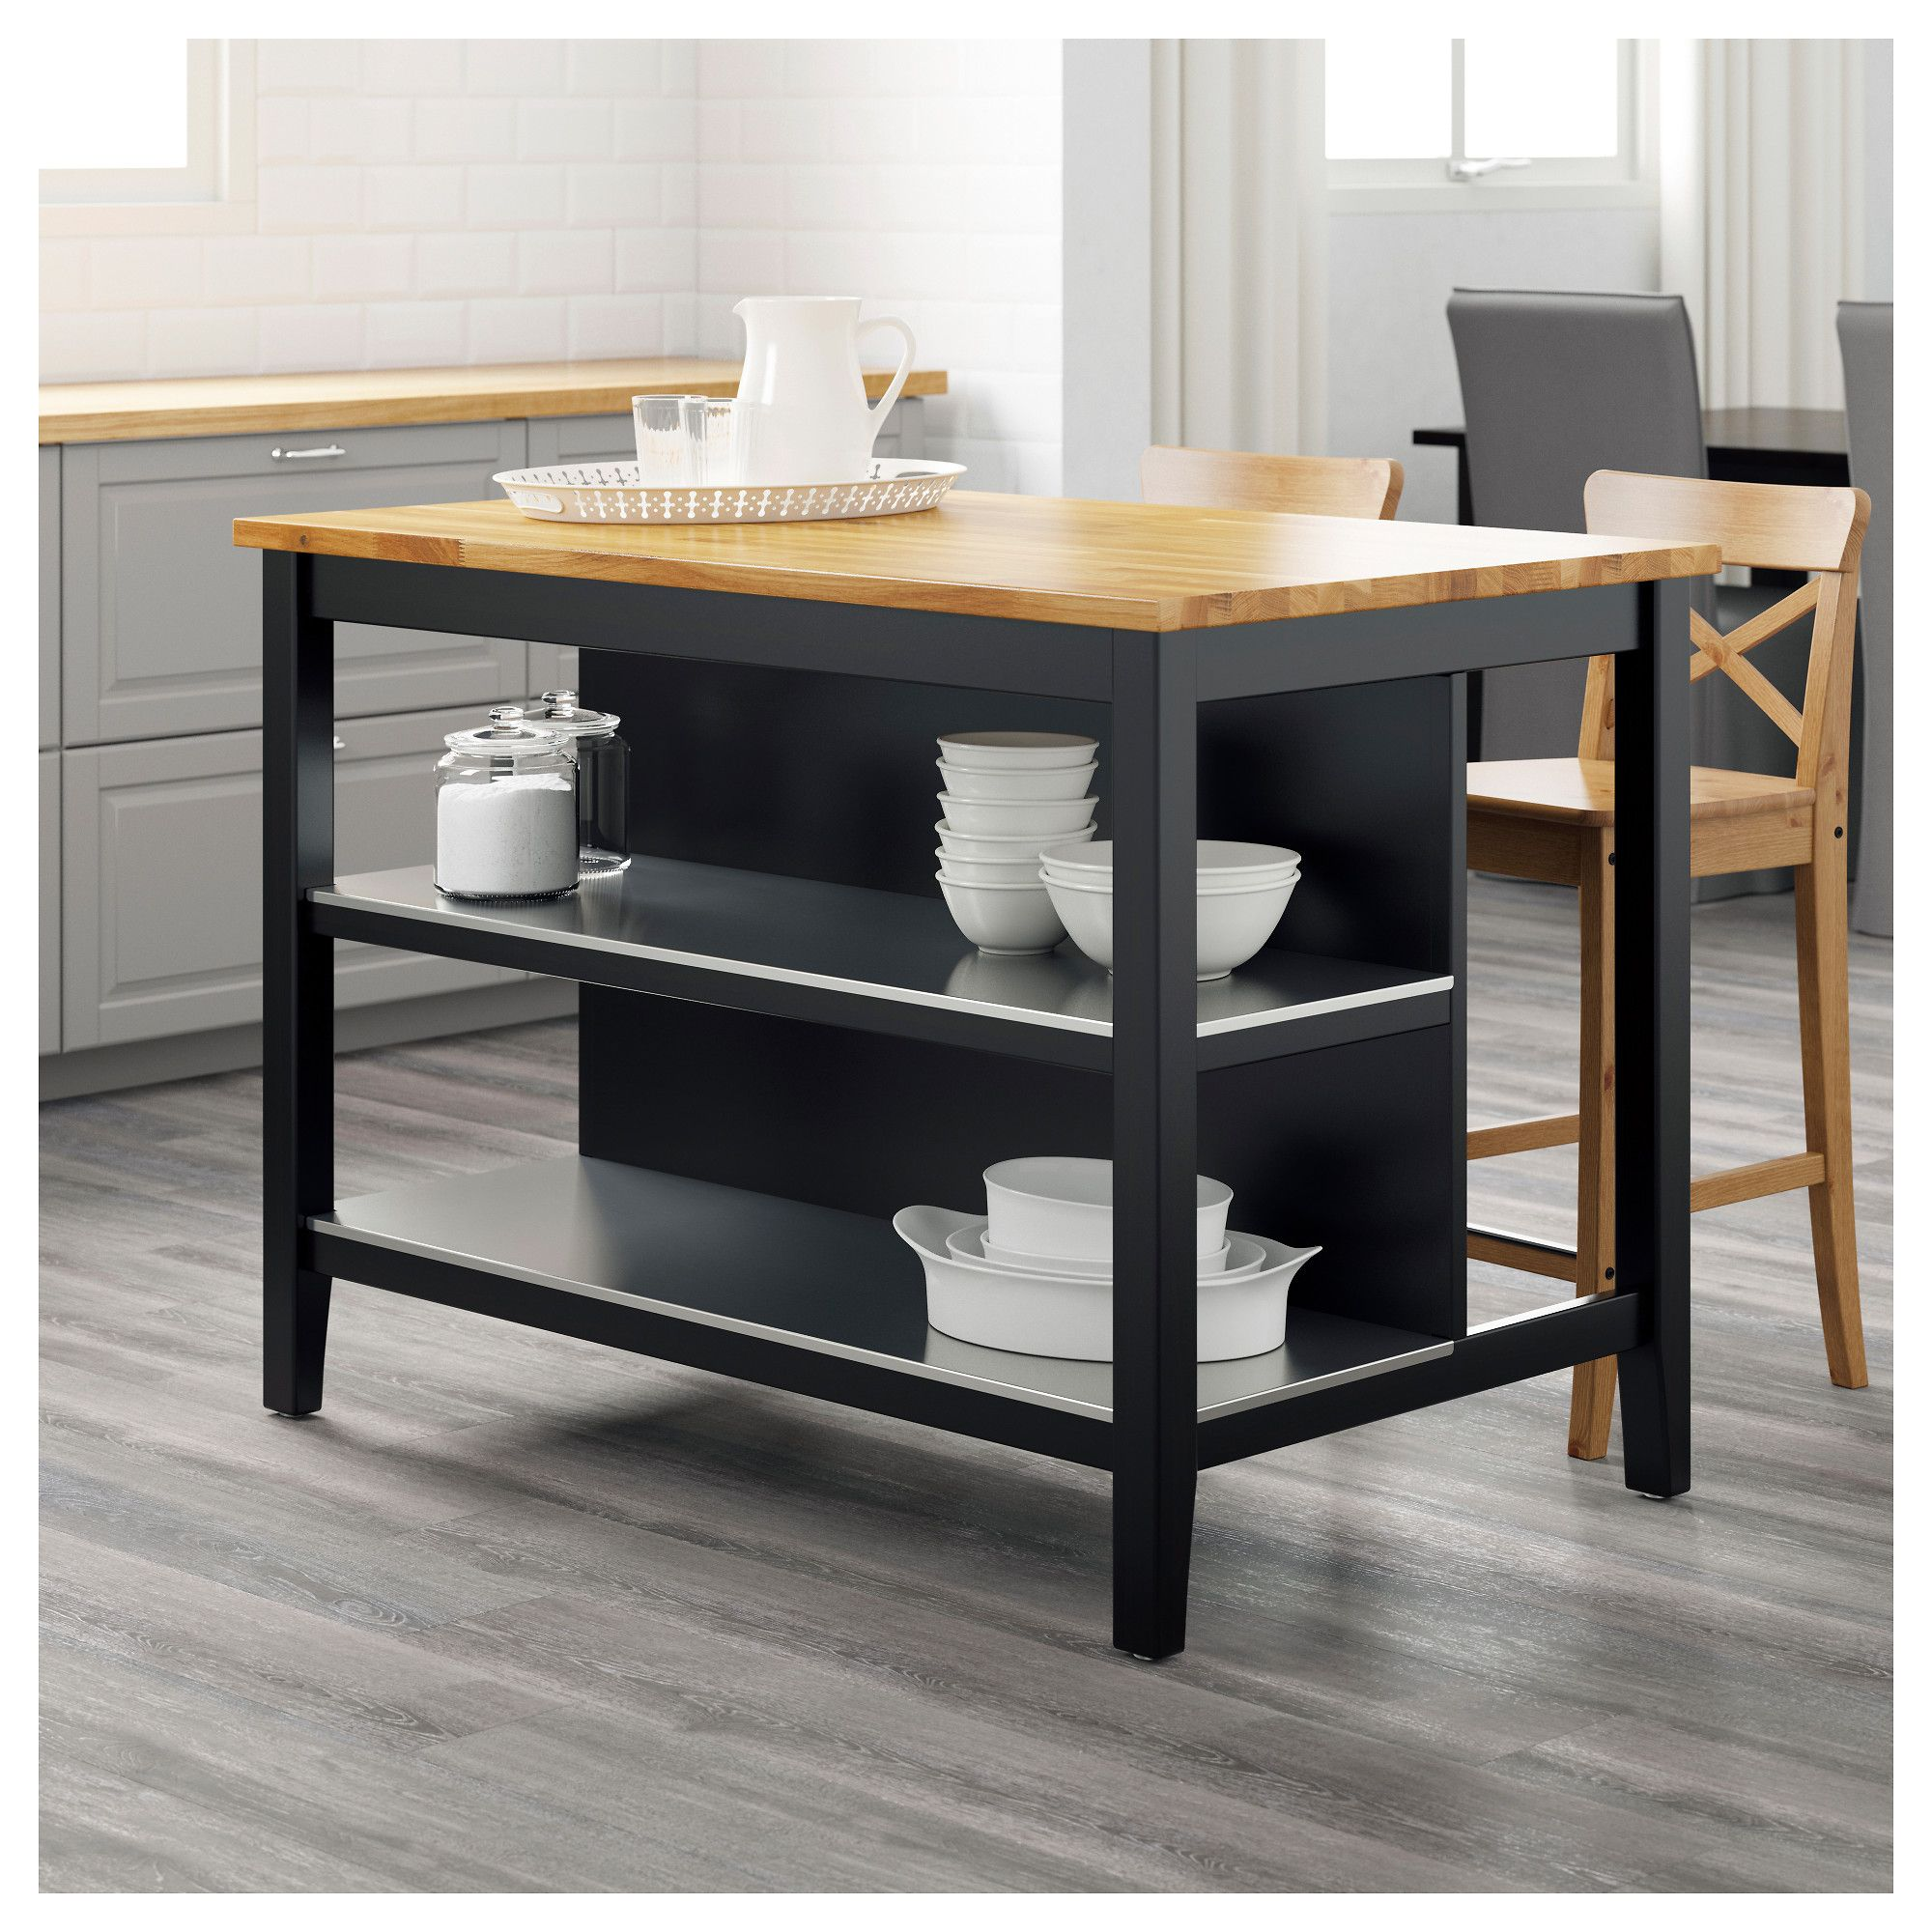 Shop for Furniture, Home Accessories & More Stenstorp